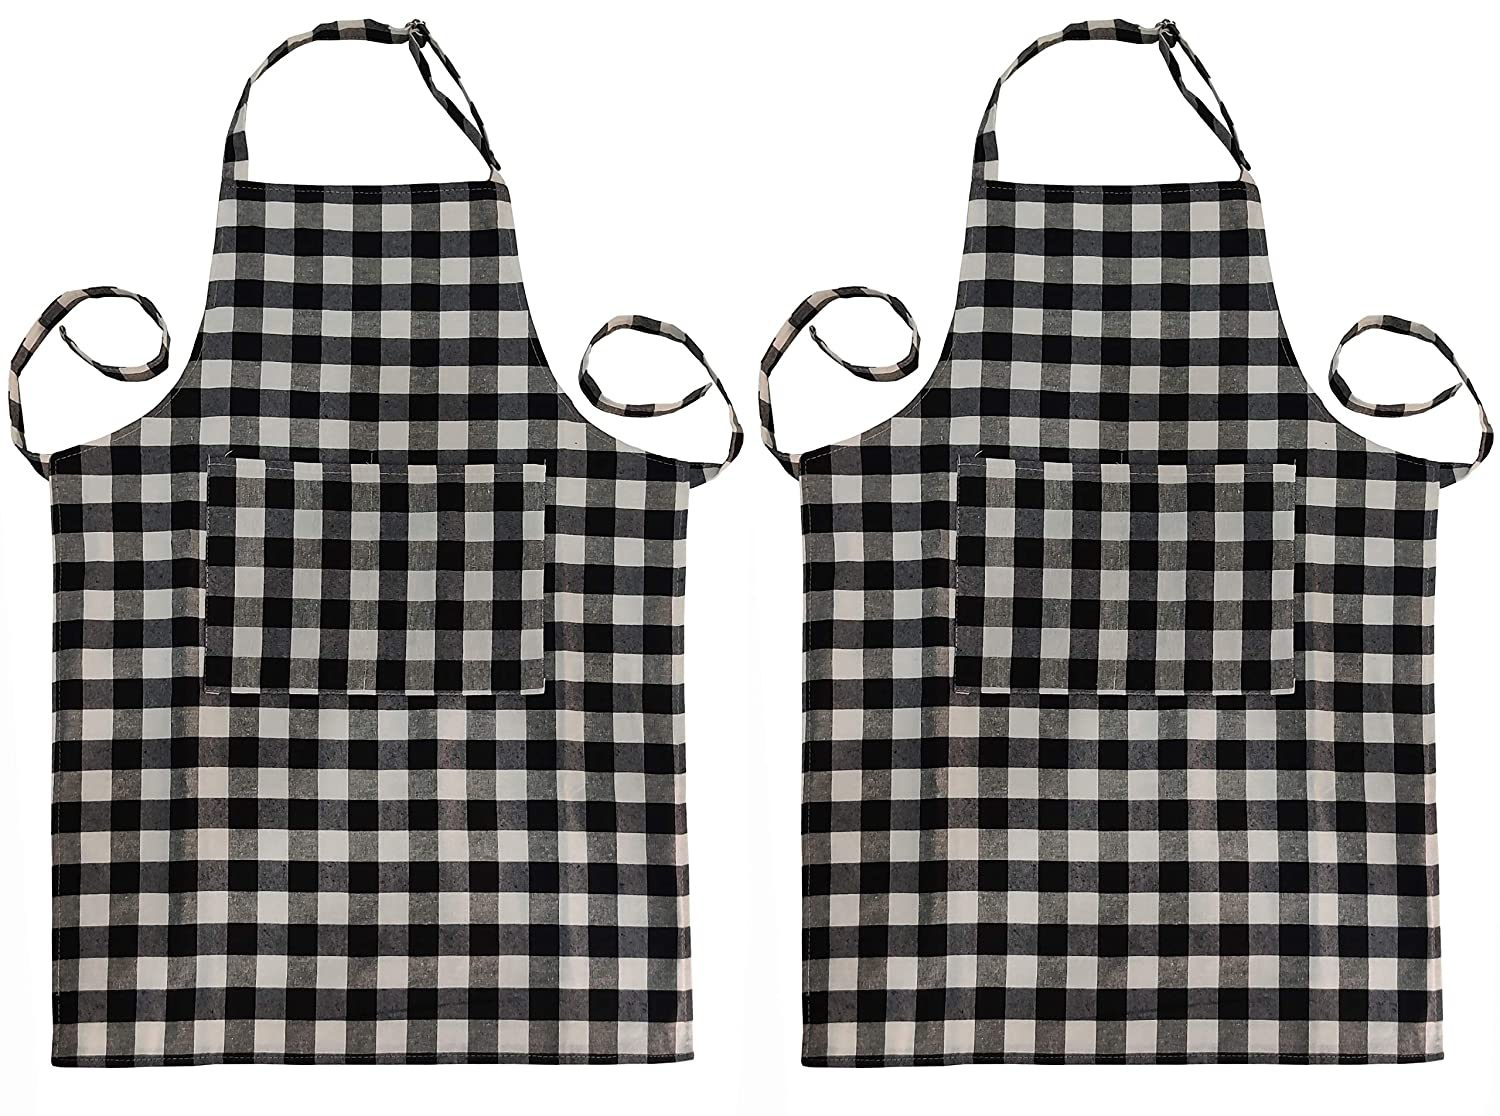 GLUN WATERPROOF COTTON APRON WITH ADJUSTABLE NECK BELT PACK OF 2